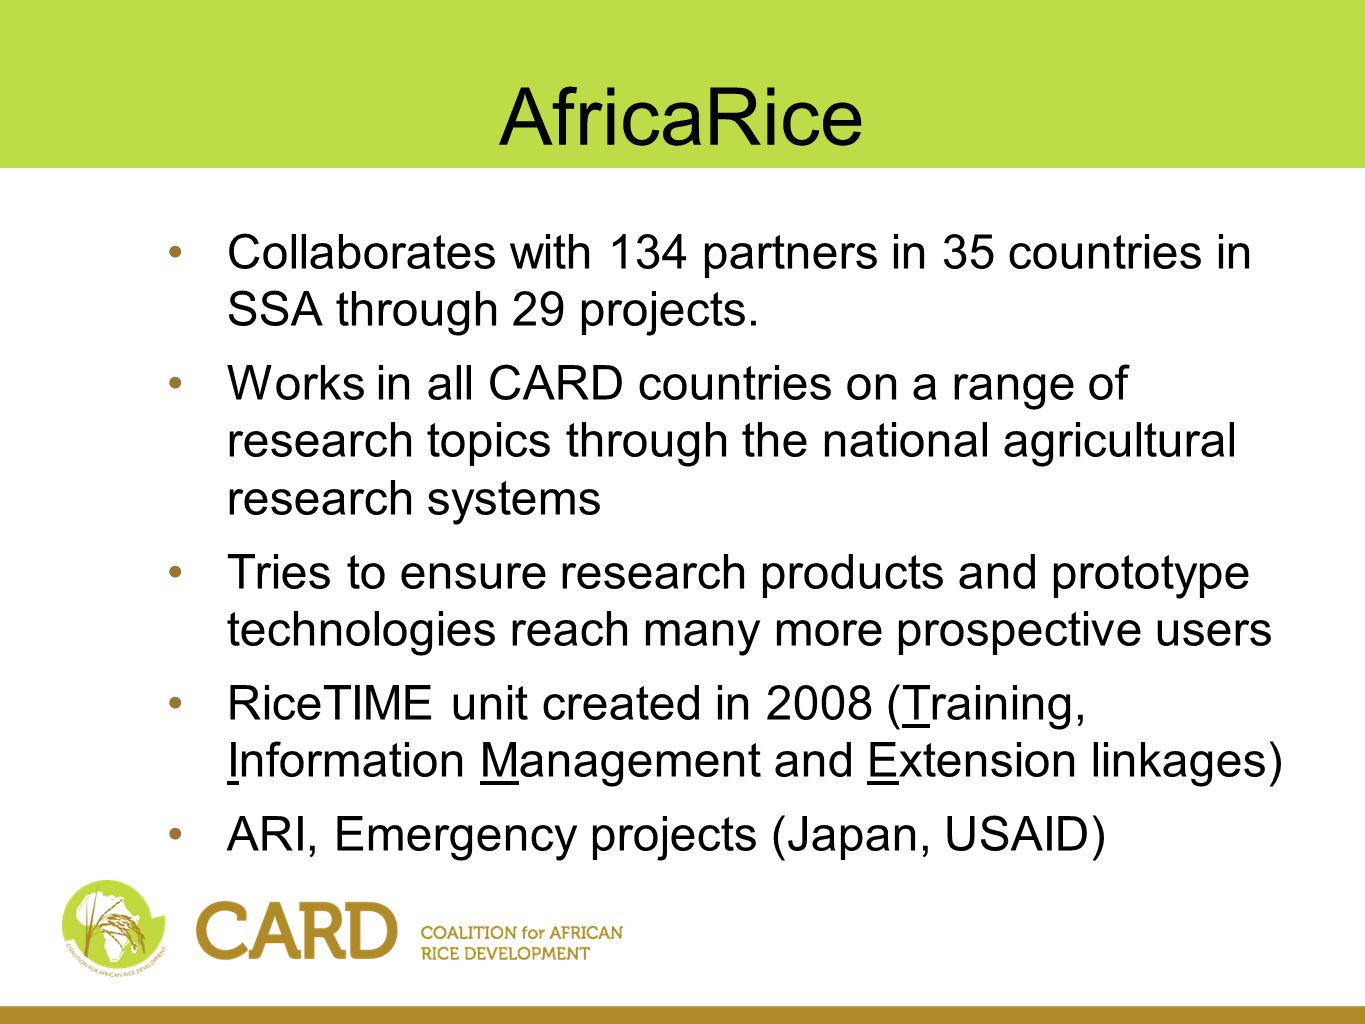 AfricaRice Global Rice Science Partnership (GRiSP)  To be approved by the CGIAR Consortium board in June 2010 Second Africa Rice Congress (March, 2010, Mali)  Actively pursuing opportunities to finance collaborative efforts with key partners such as FARA, JICA, JIRCAS and Egypt to strengthen Africa's rice research and extension capacities